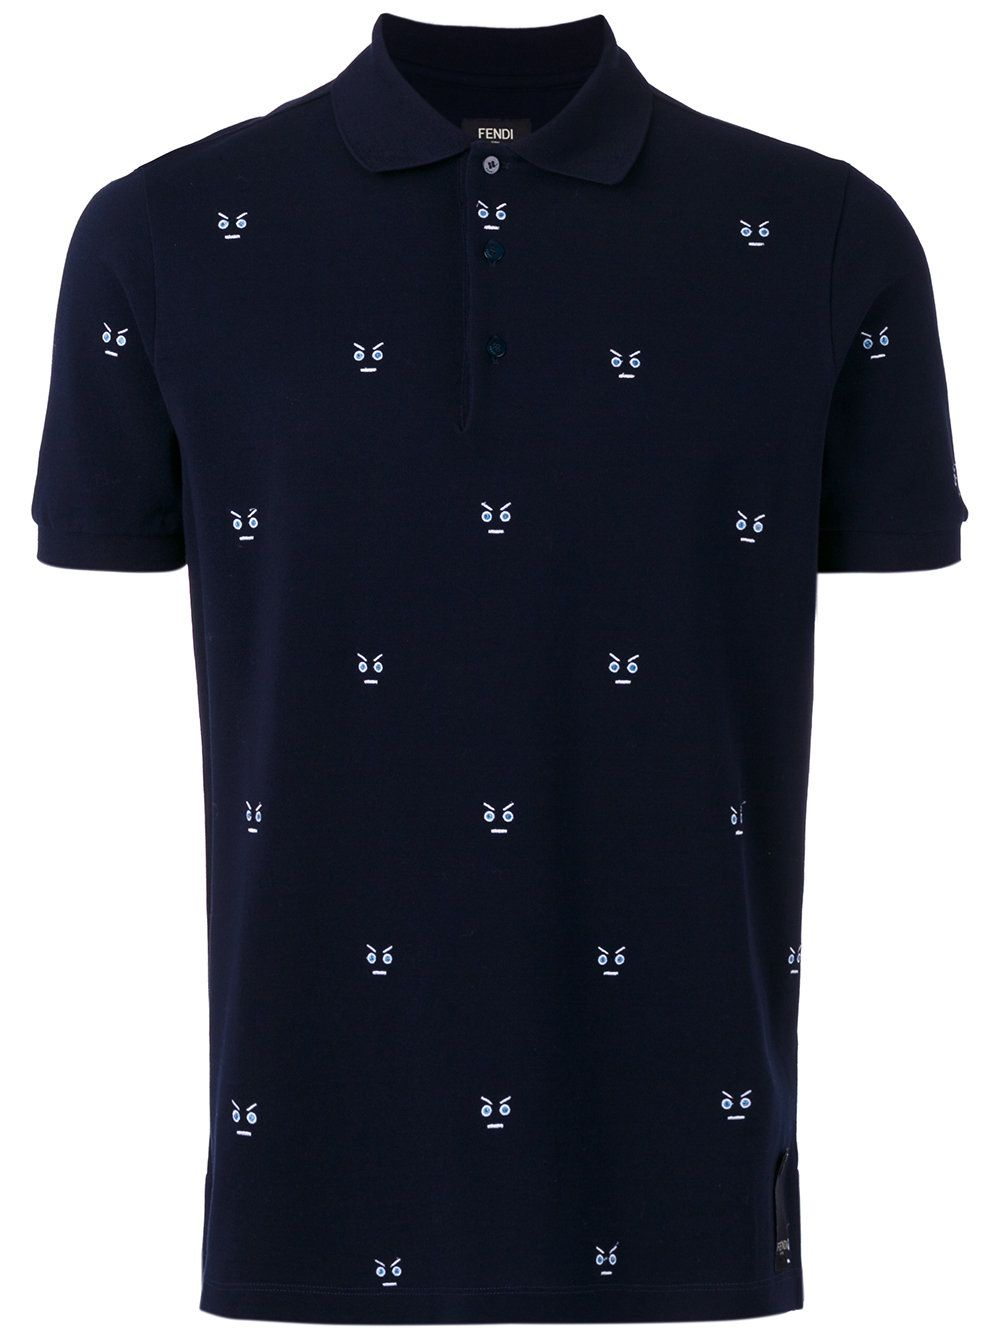 1a7939f8d62c7 Fendi embroidered detail polo shirt